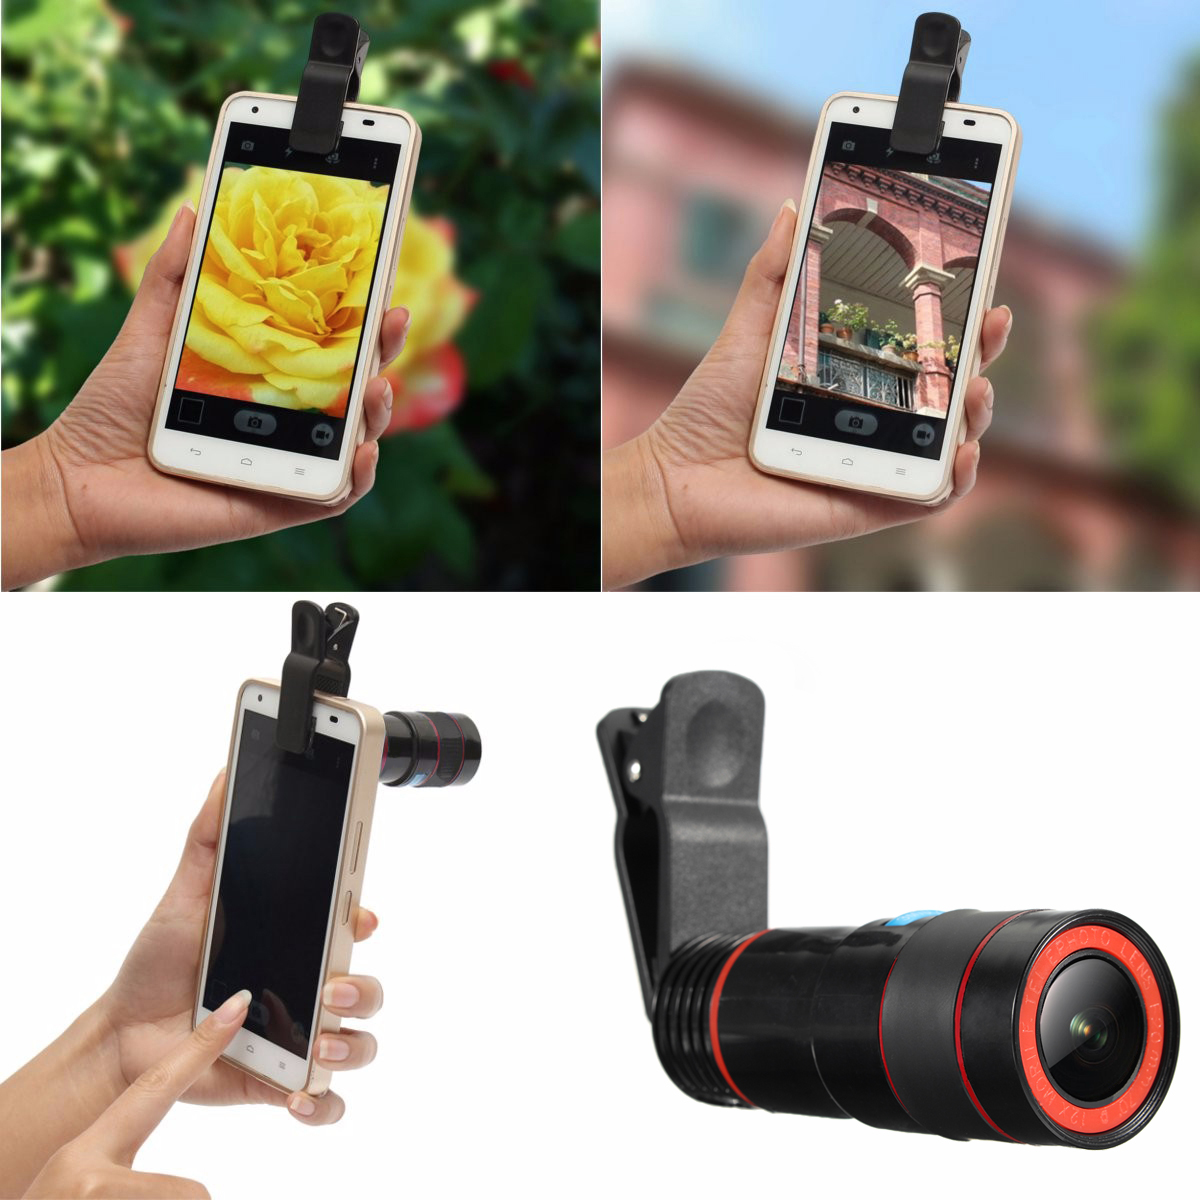 Universal 8X-12X Zoom Telescope Clip-on high clarity Camera Lens for Smartphone Tablets -Black